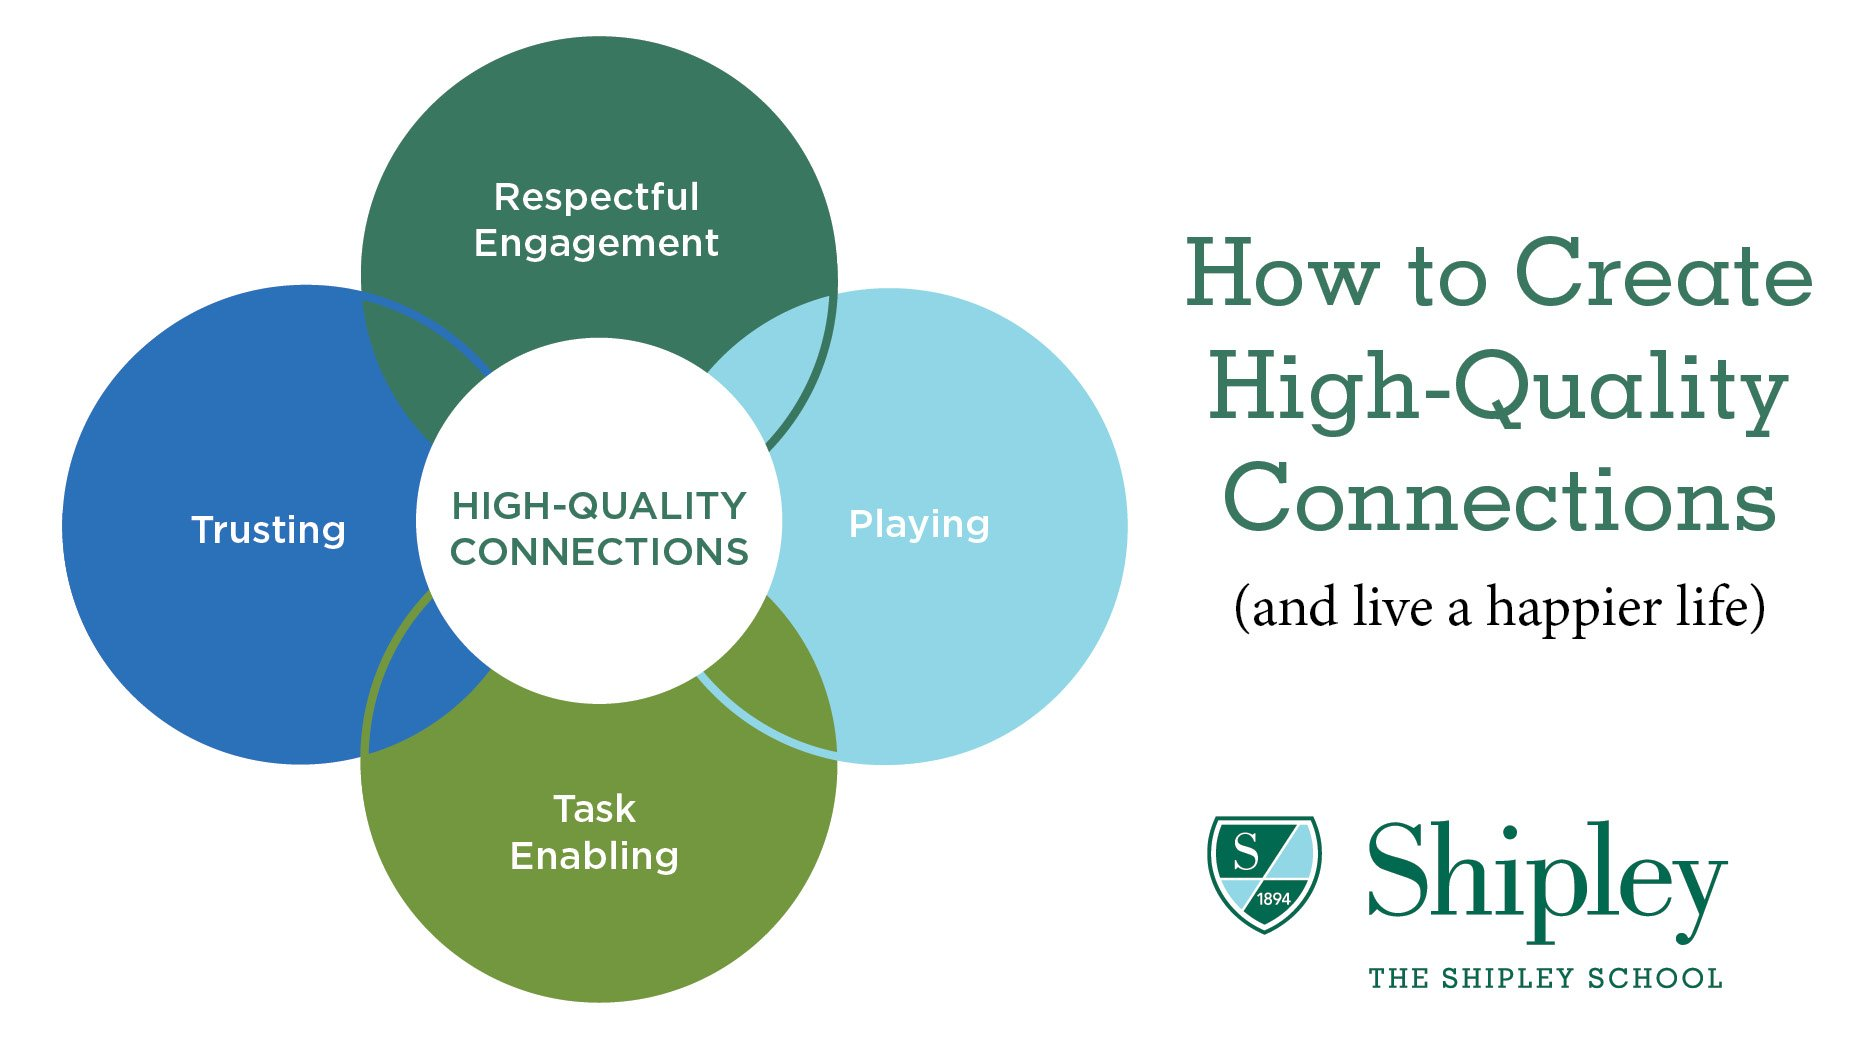 How to Create High-Quality Connections